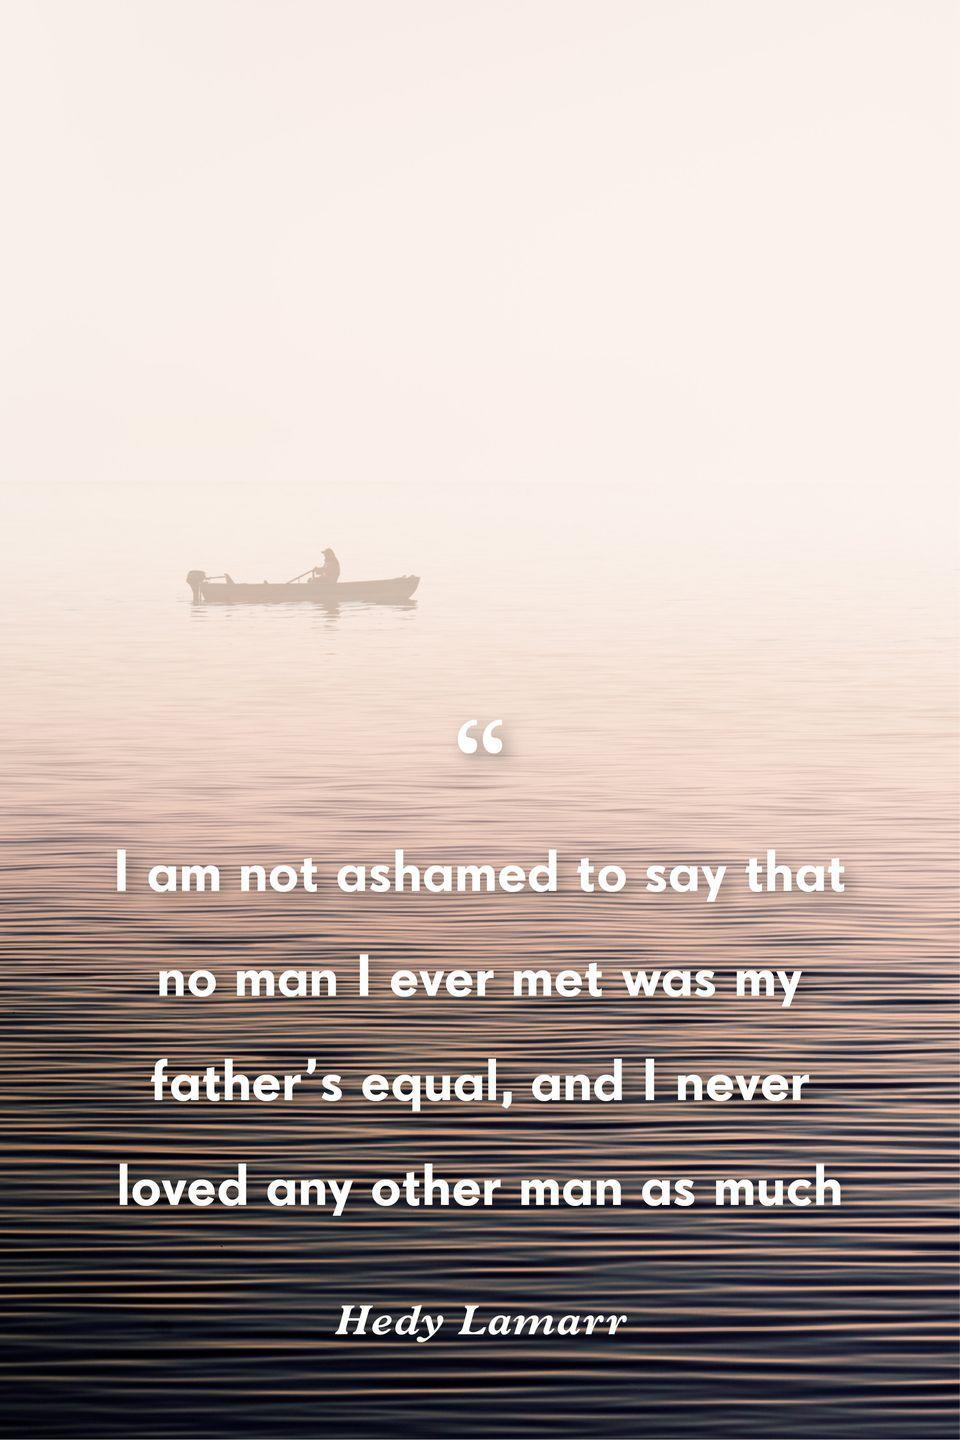 """<p>""""I am not ashamed to say that no man I ever met was my father's equal, and I never loved any other man as much,""""</p>"""